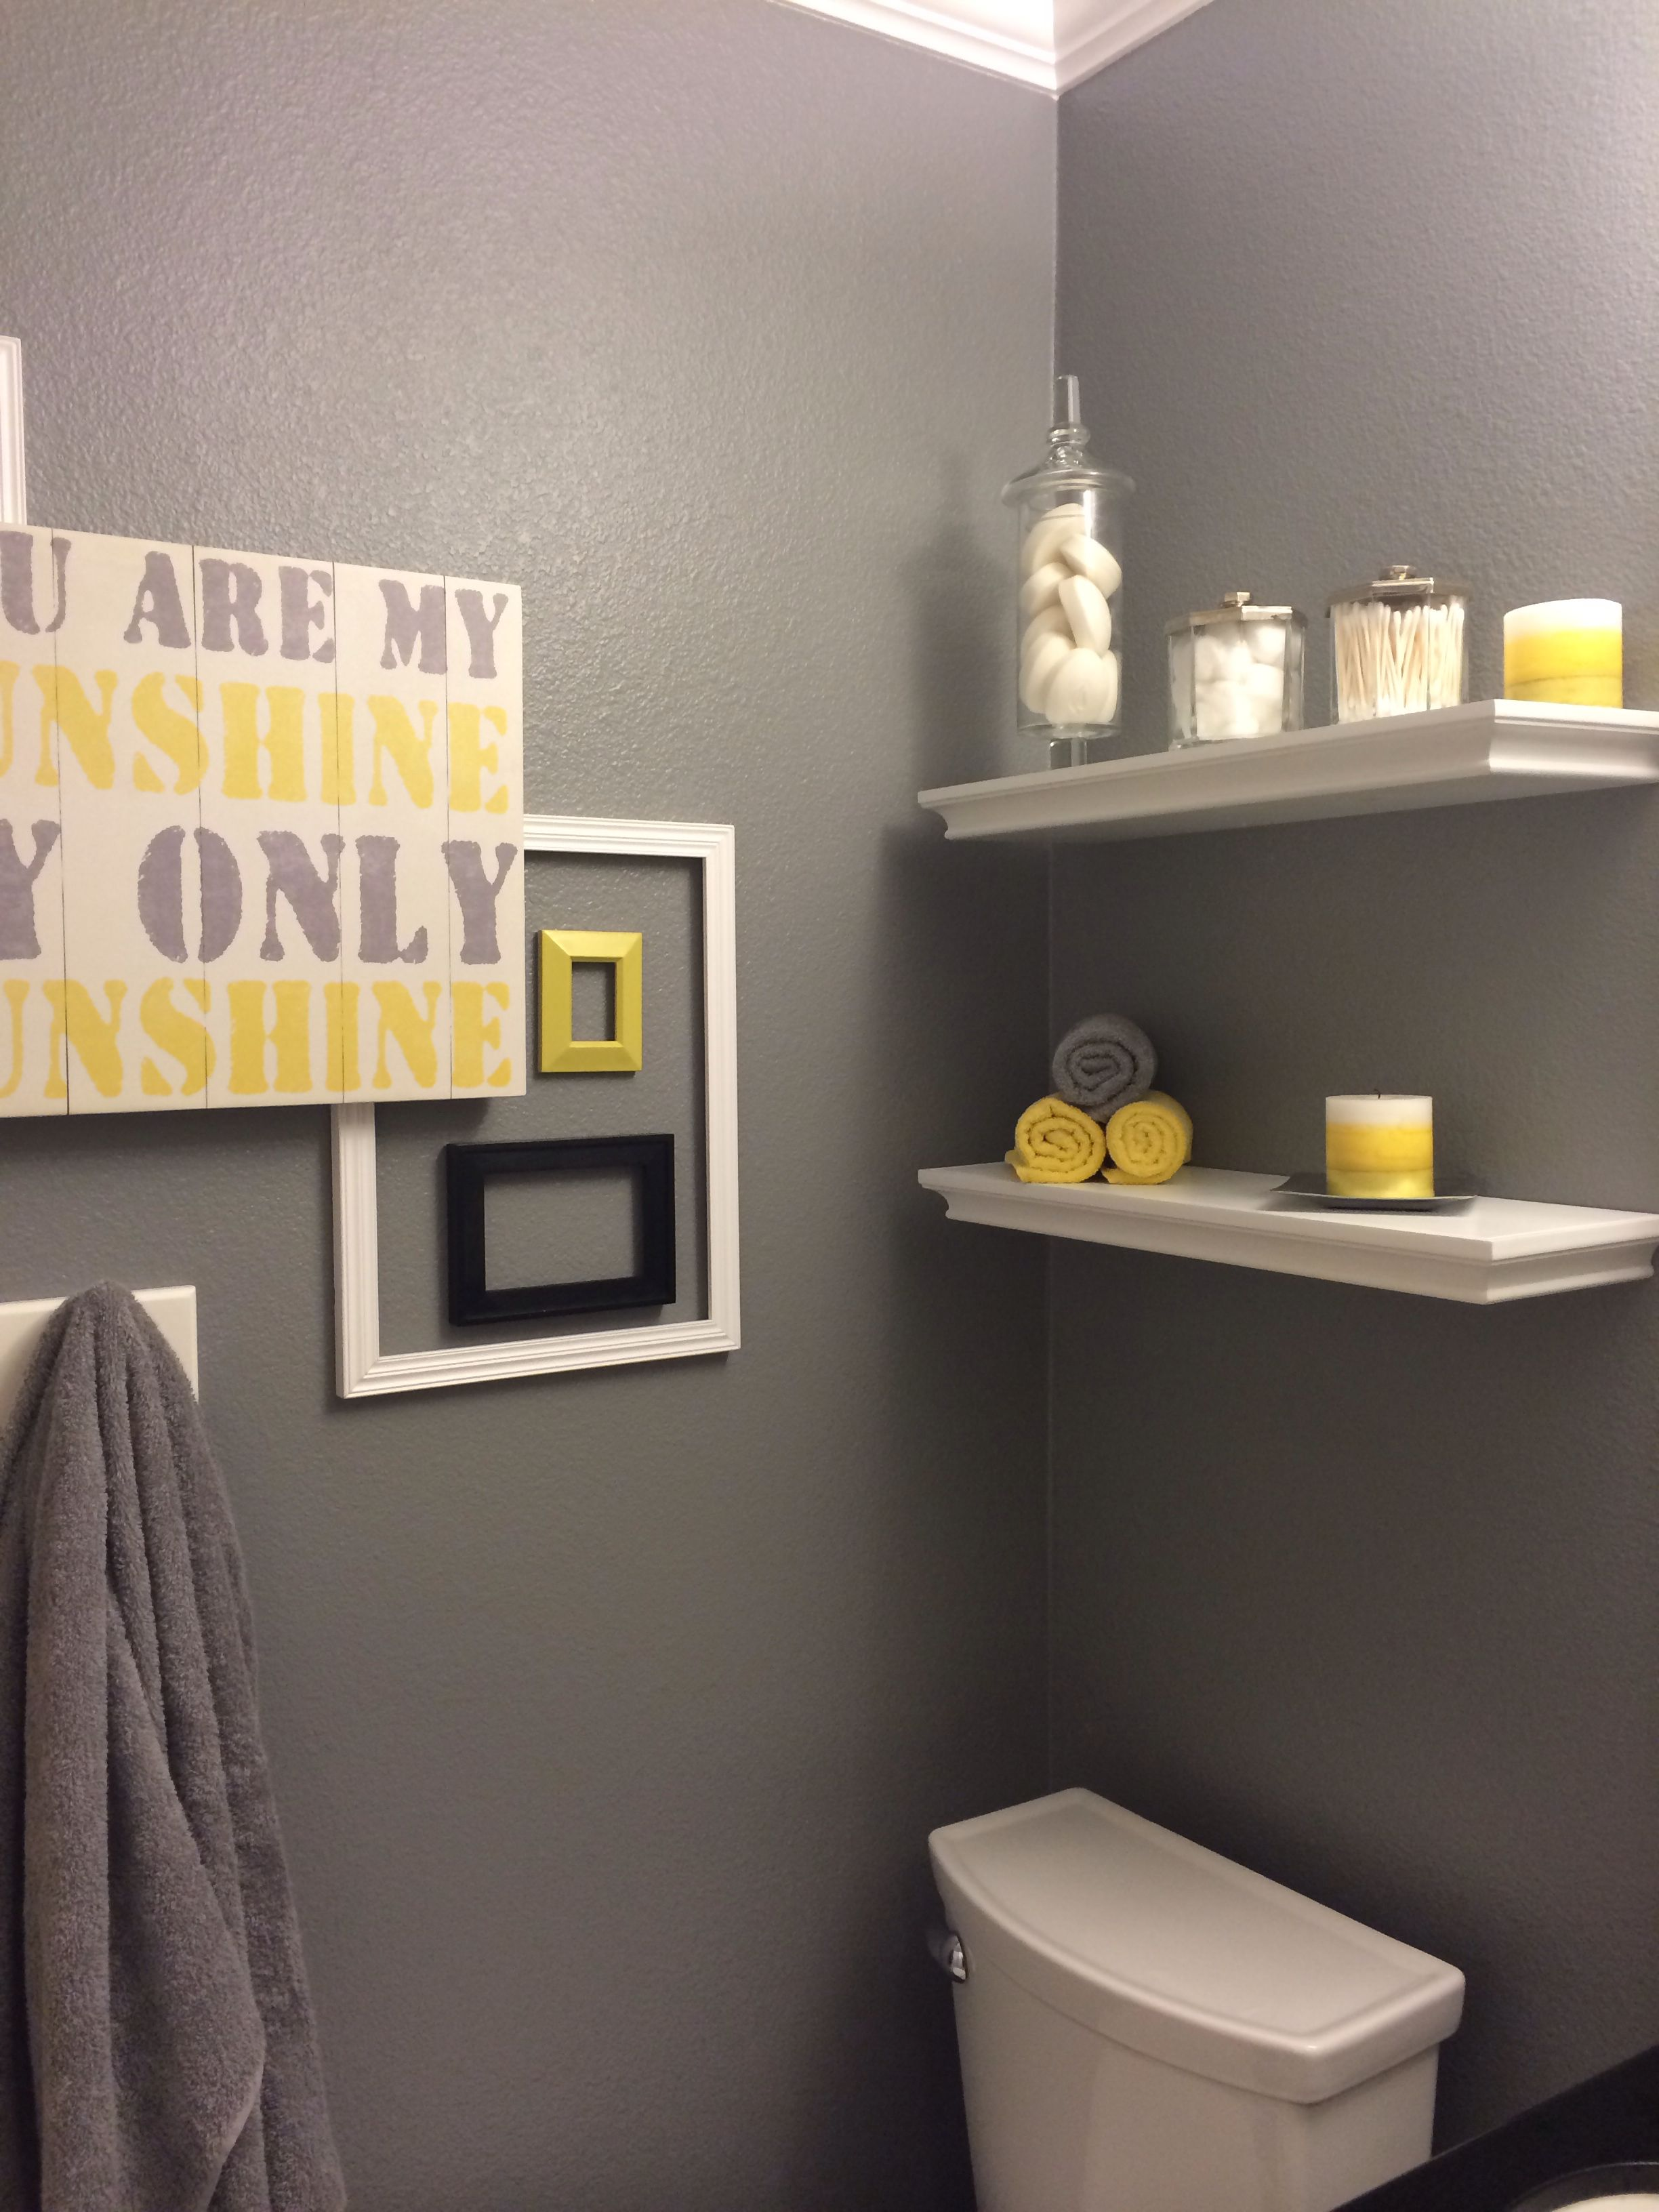 using too much grey is suppressive, the absence of color can be